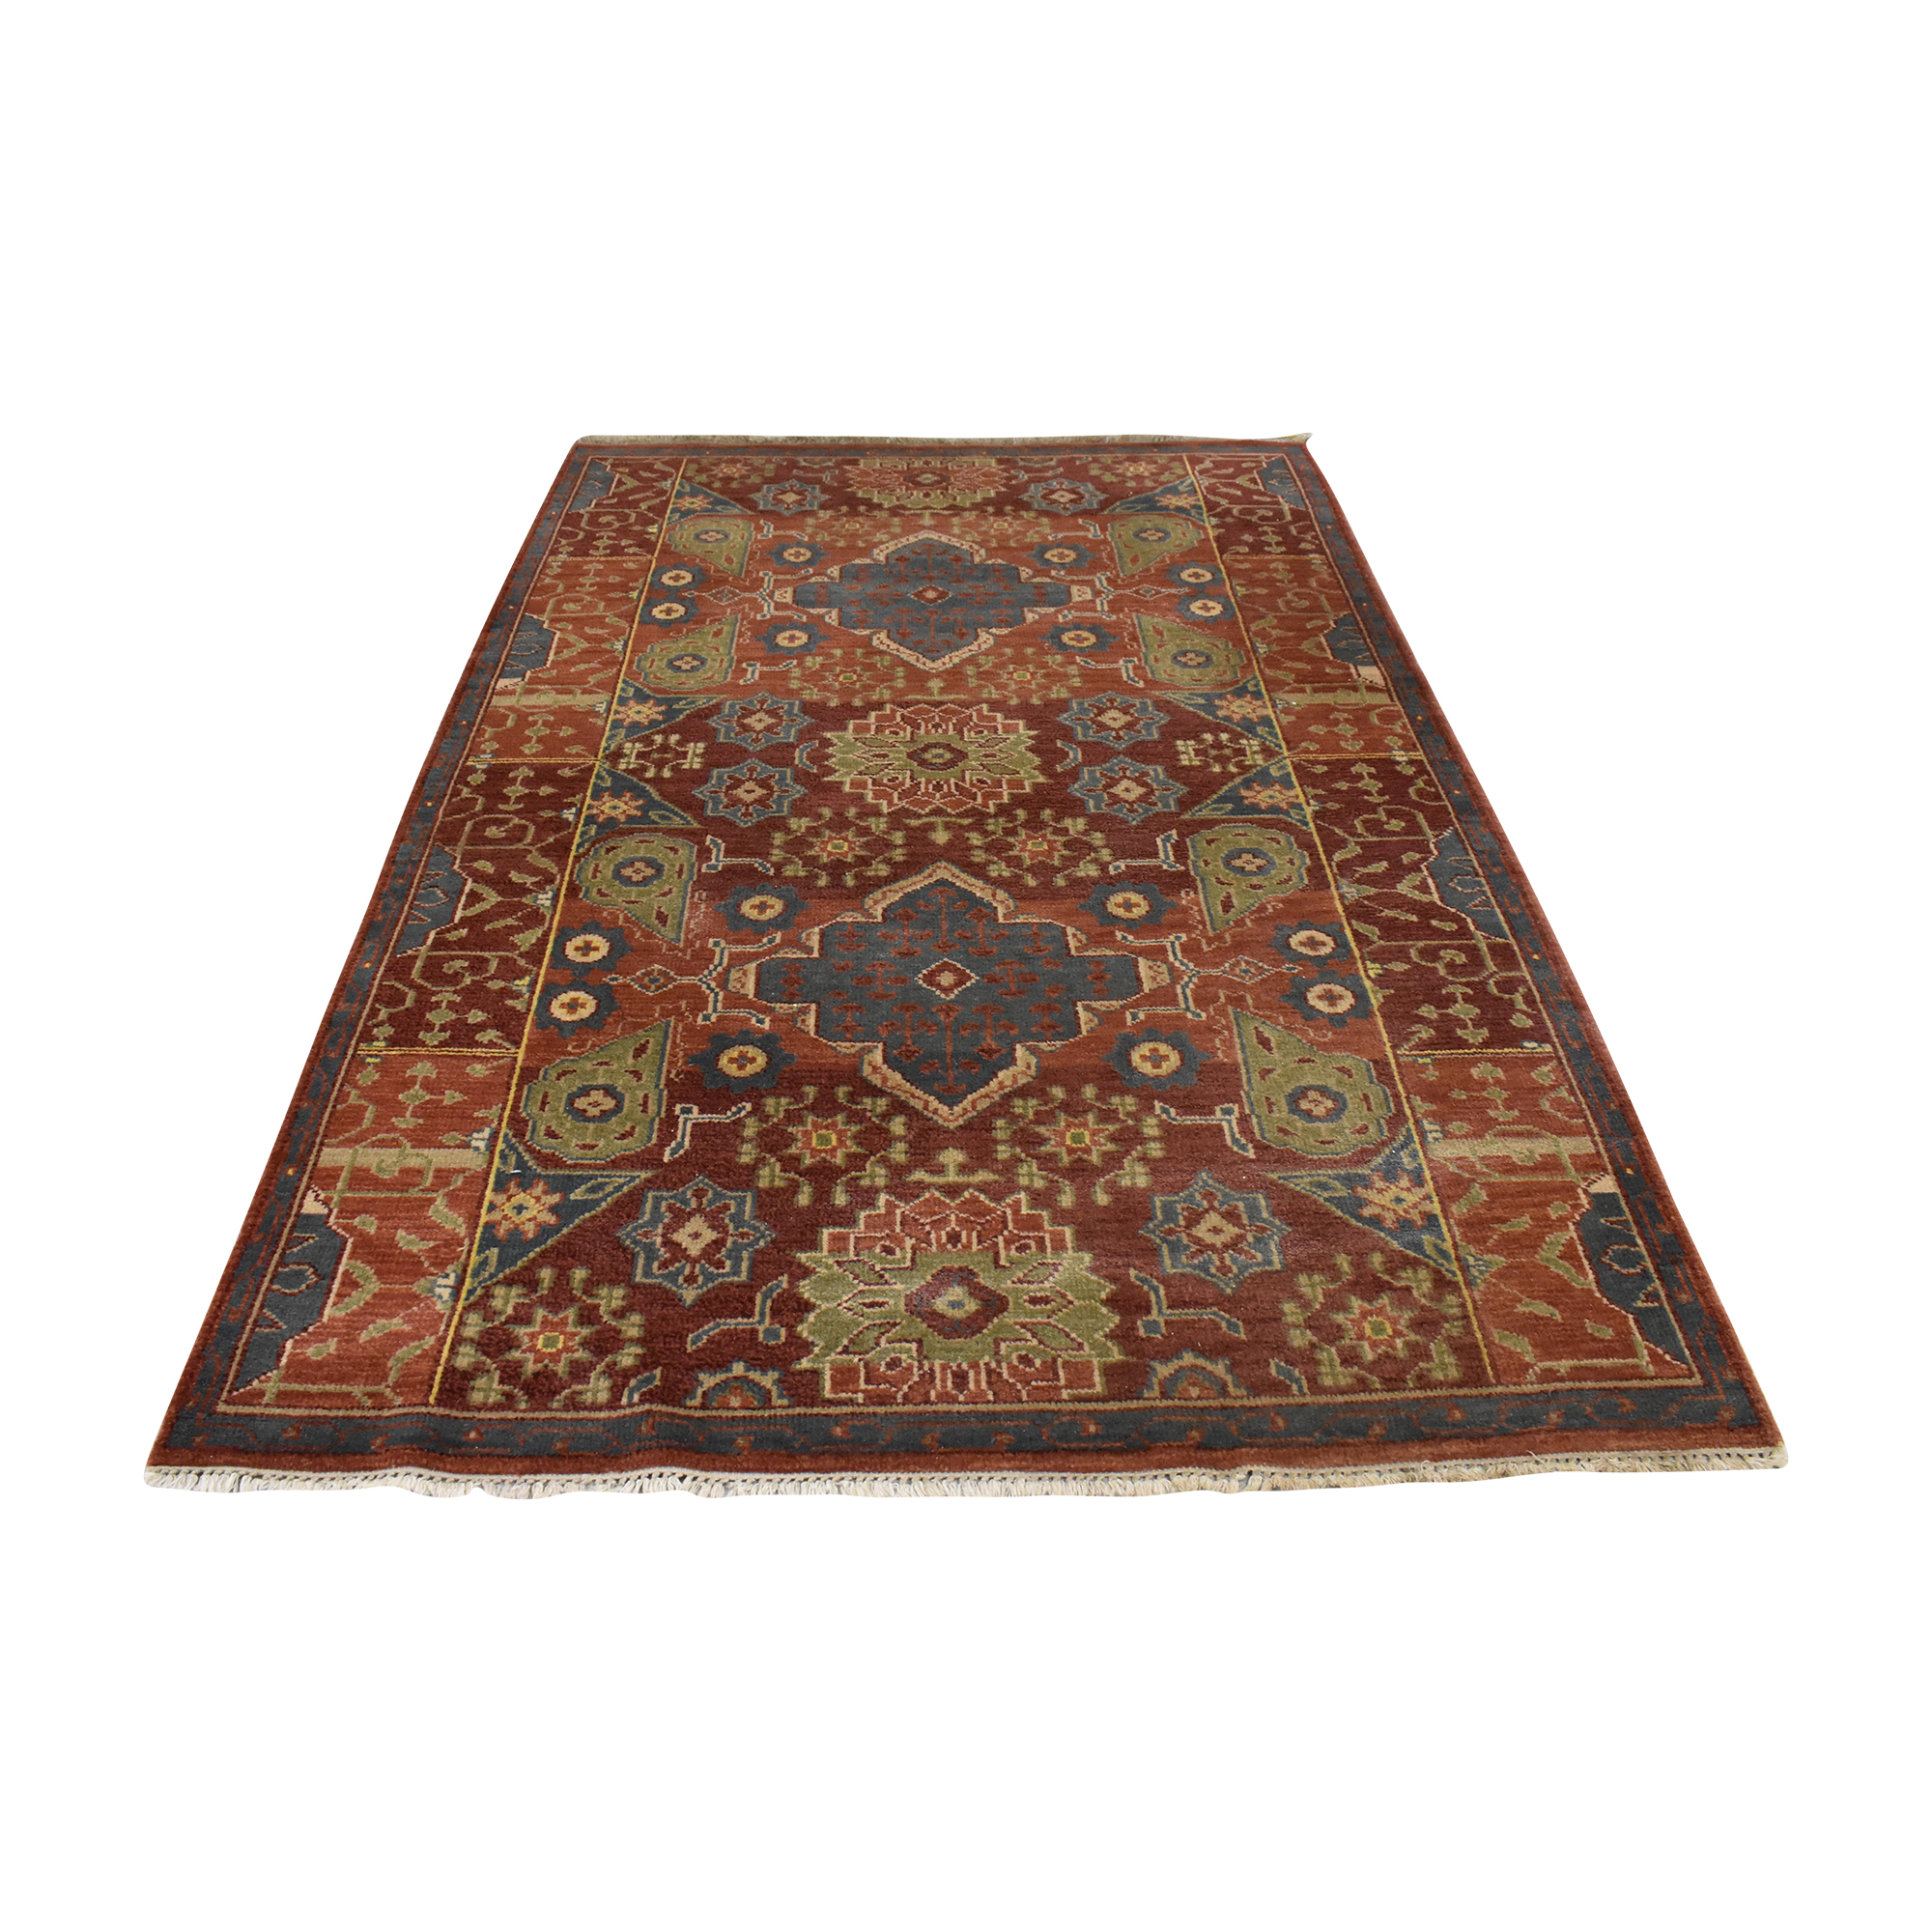 Room & Board Room & Board Patterned Area Rug second hand